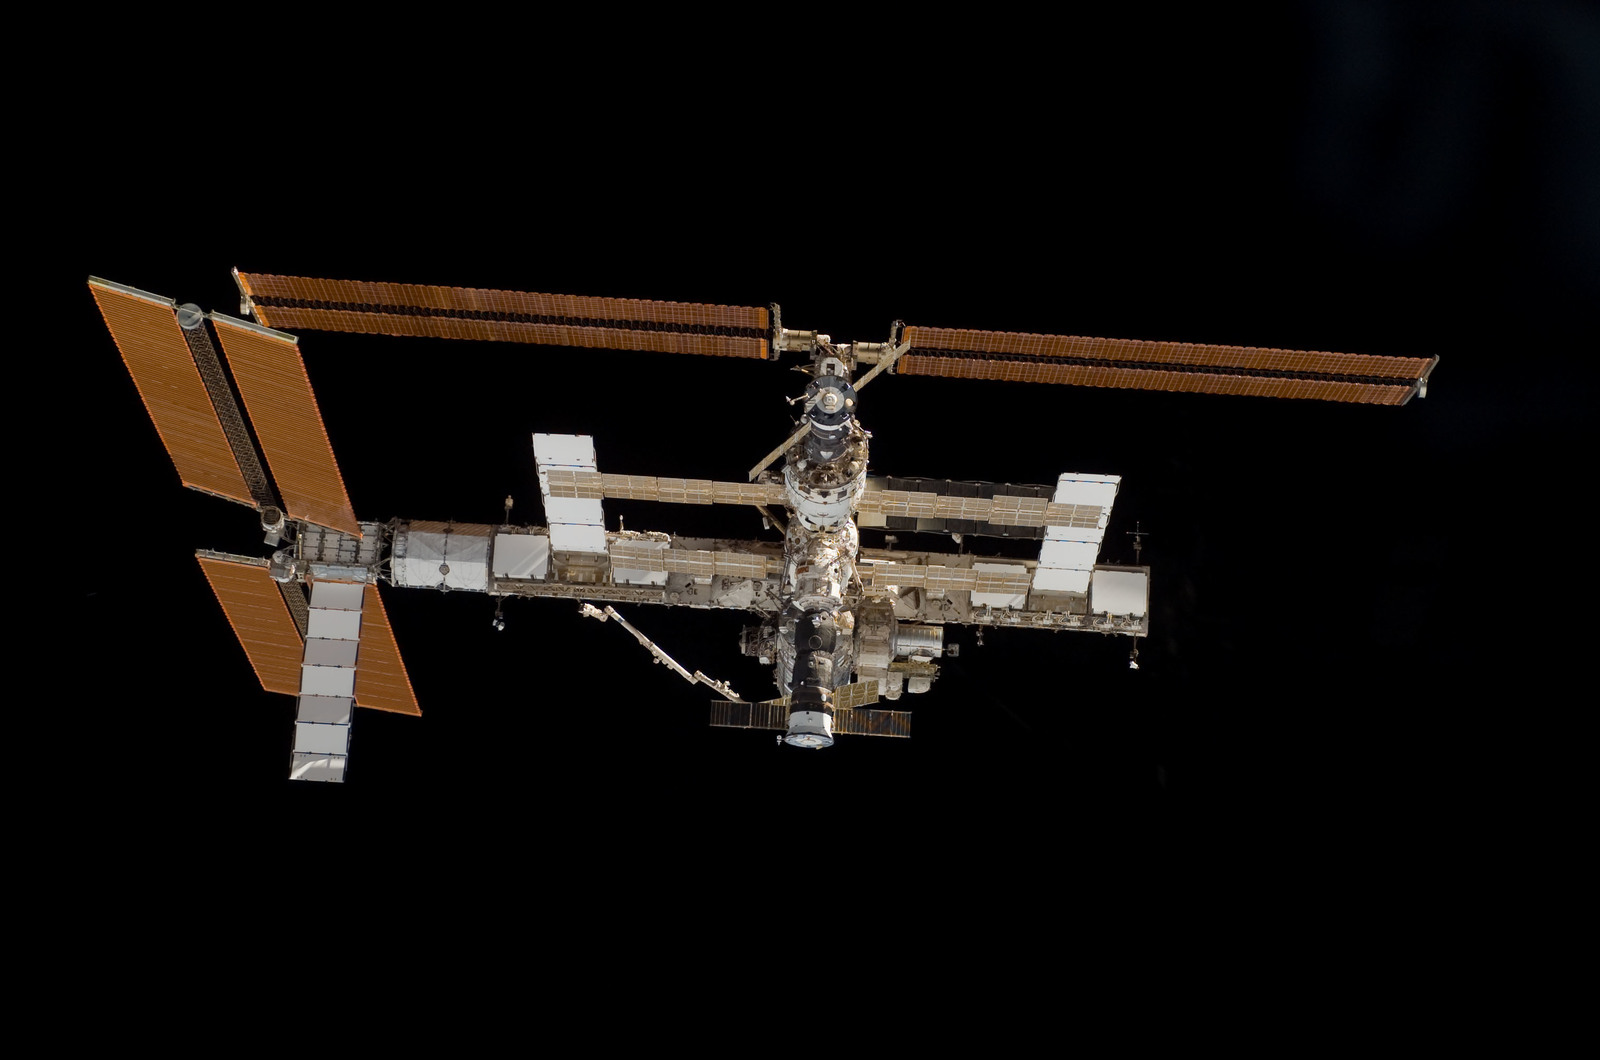 S115E06707 - STS-115 - Overall exterior view of the ISS during undocking and Flyaround Operations for STS-115 Space Shuttle Atlantis